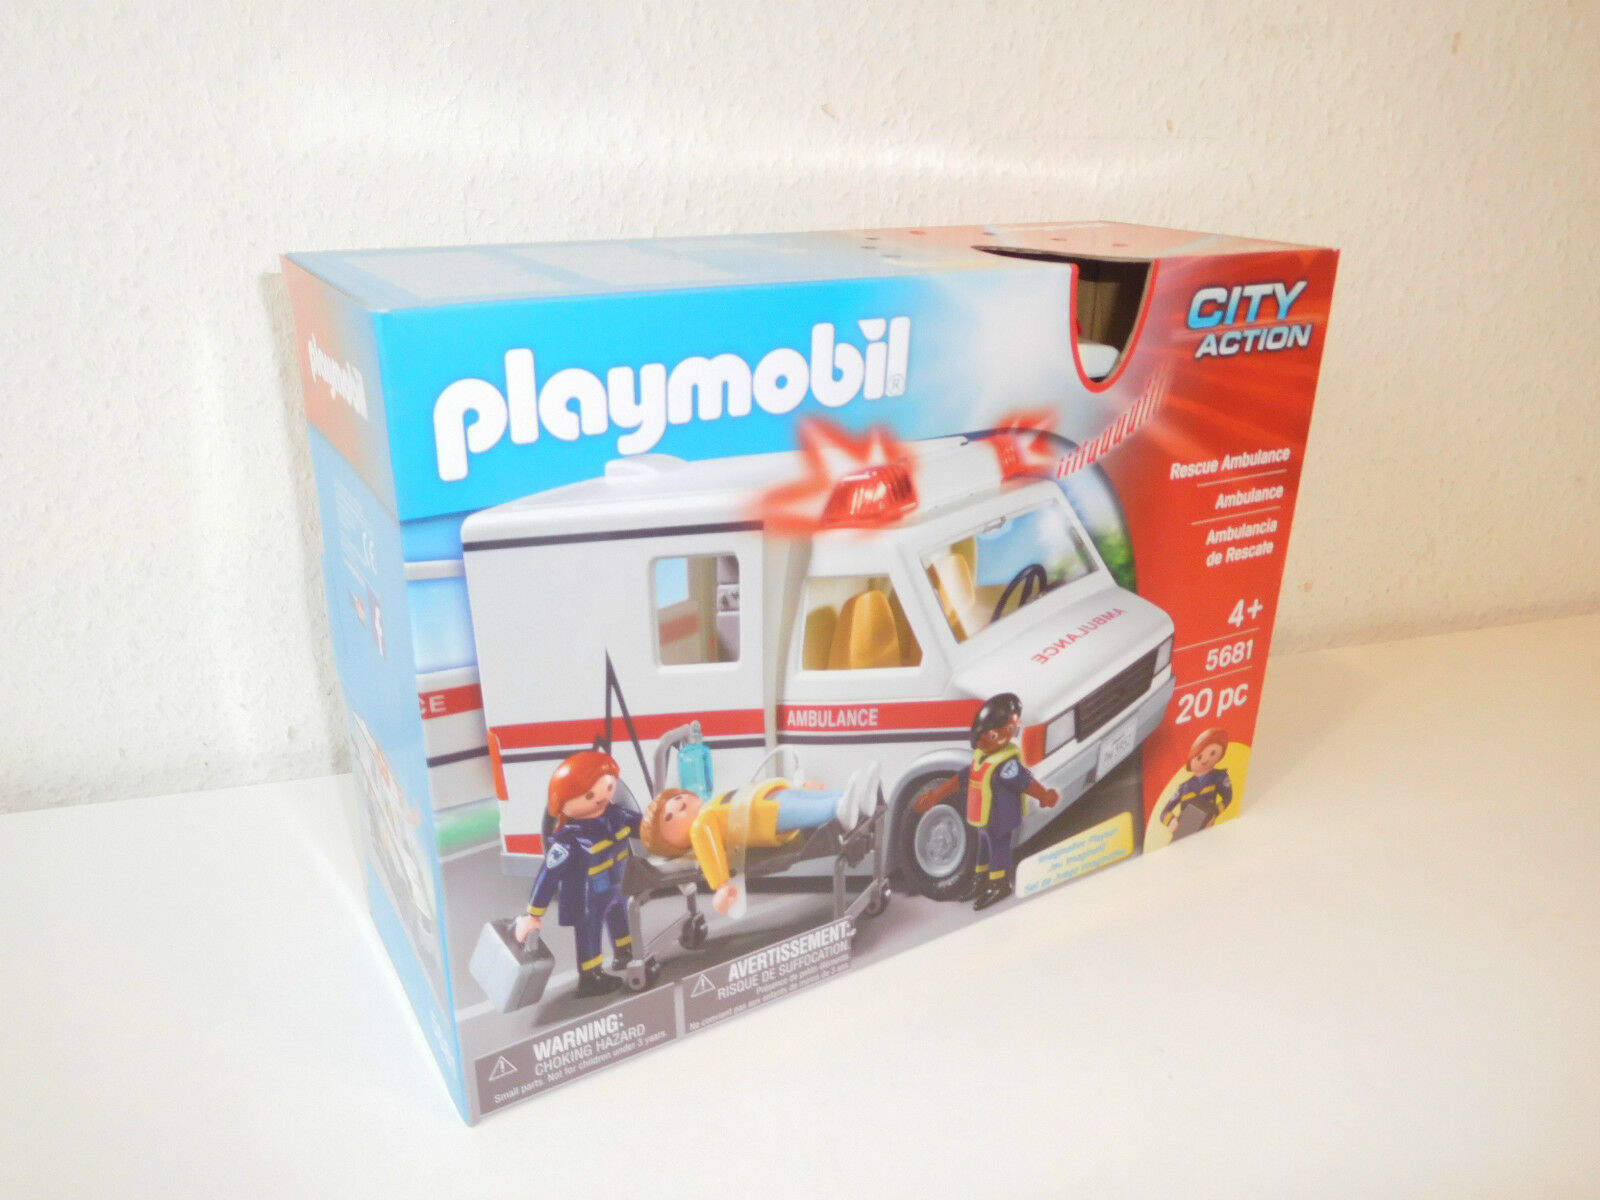 Playmobil USA limited set 5681 ambulance MISB